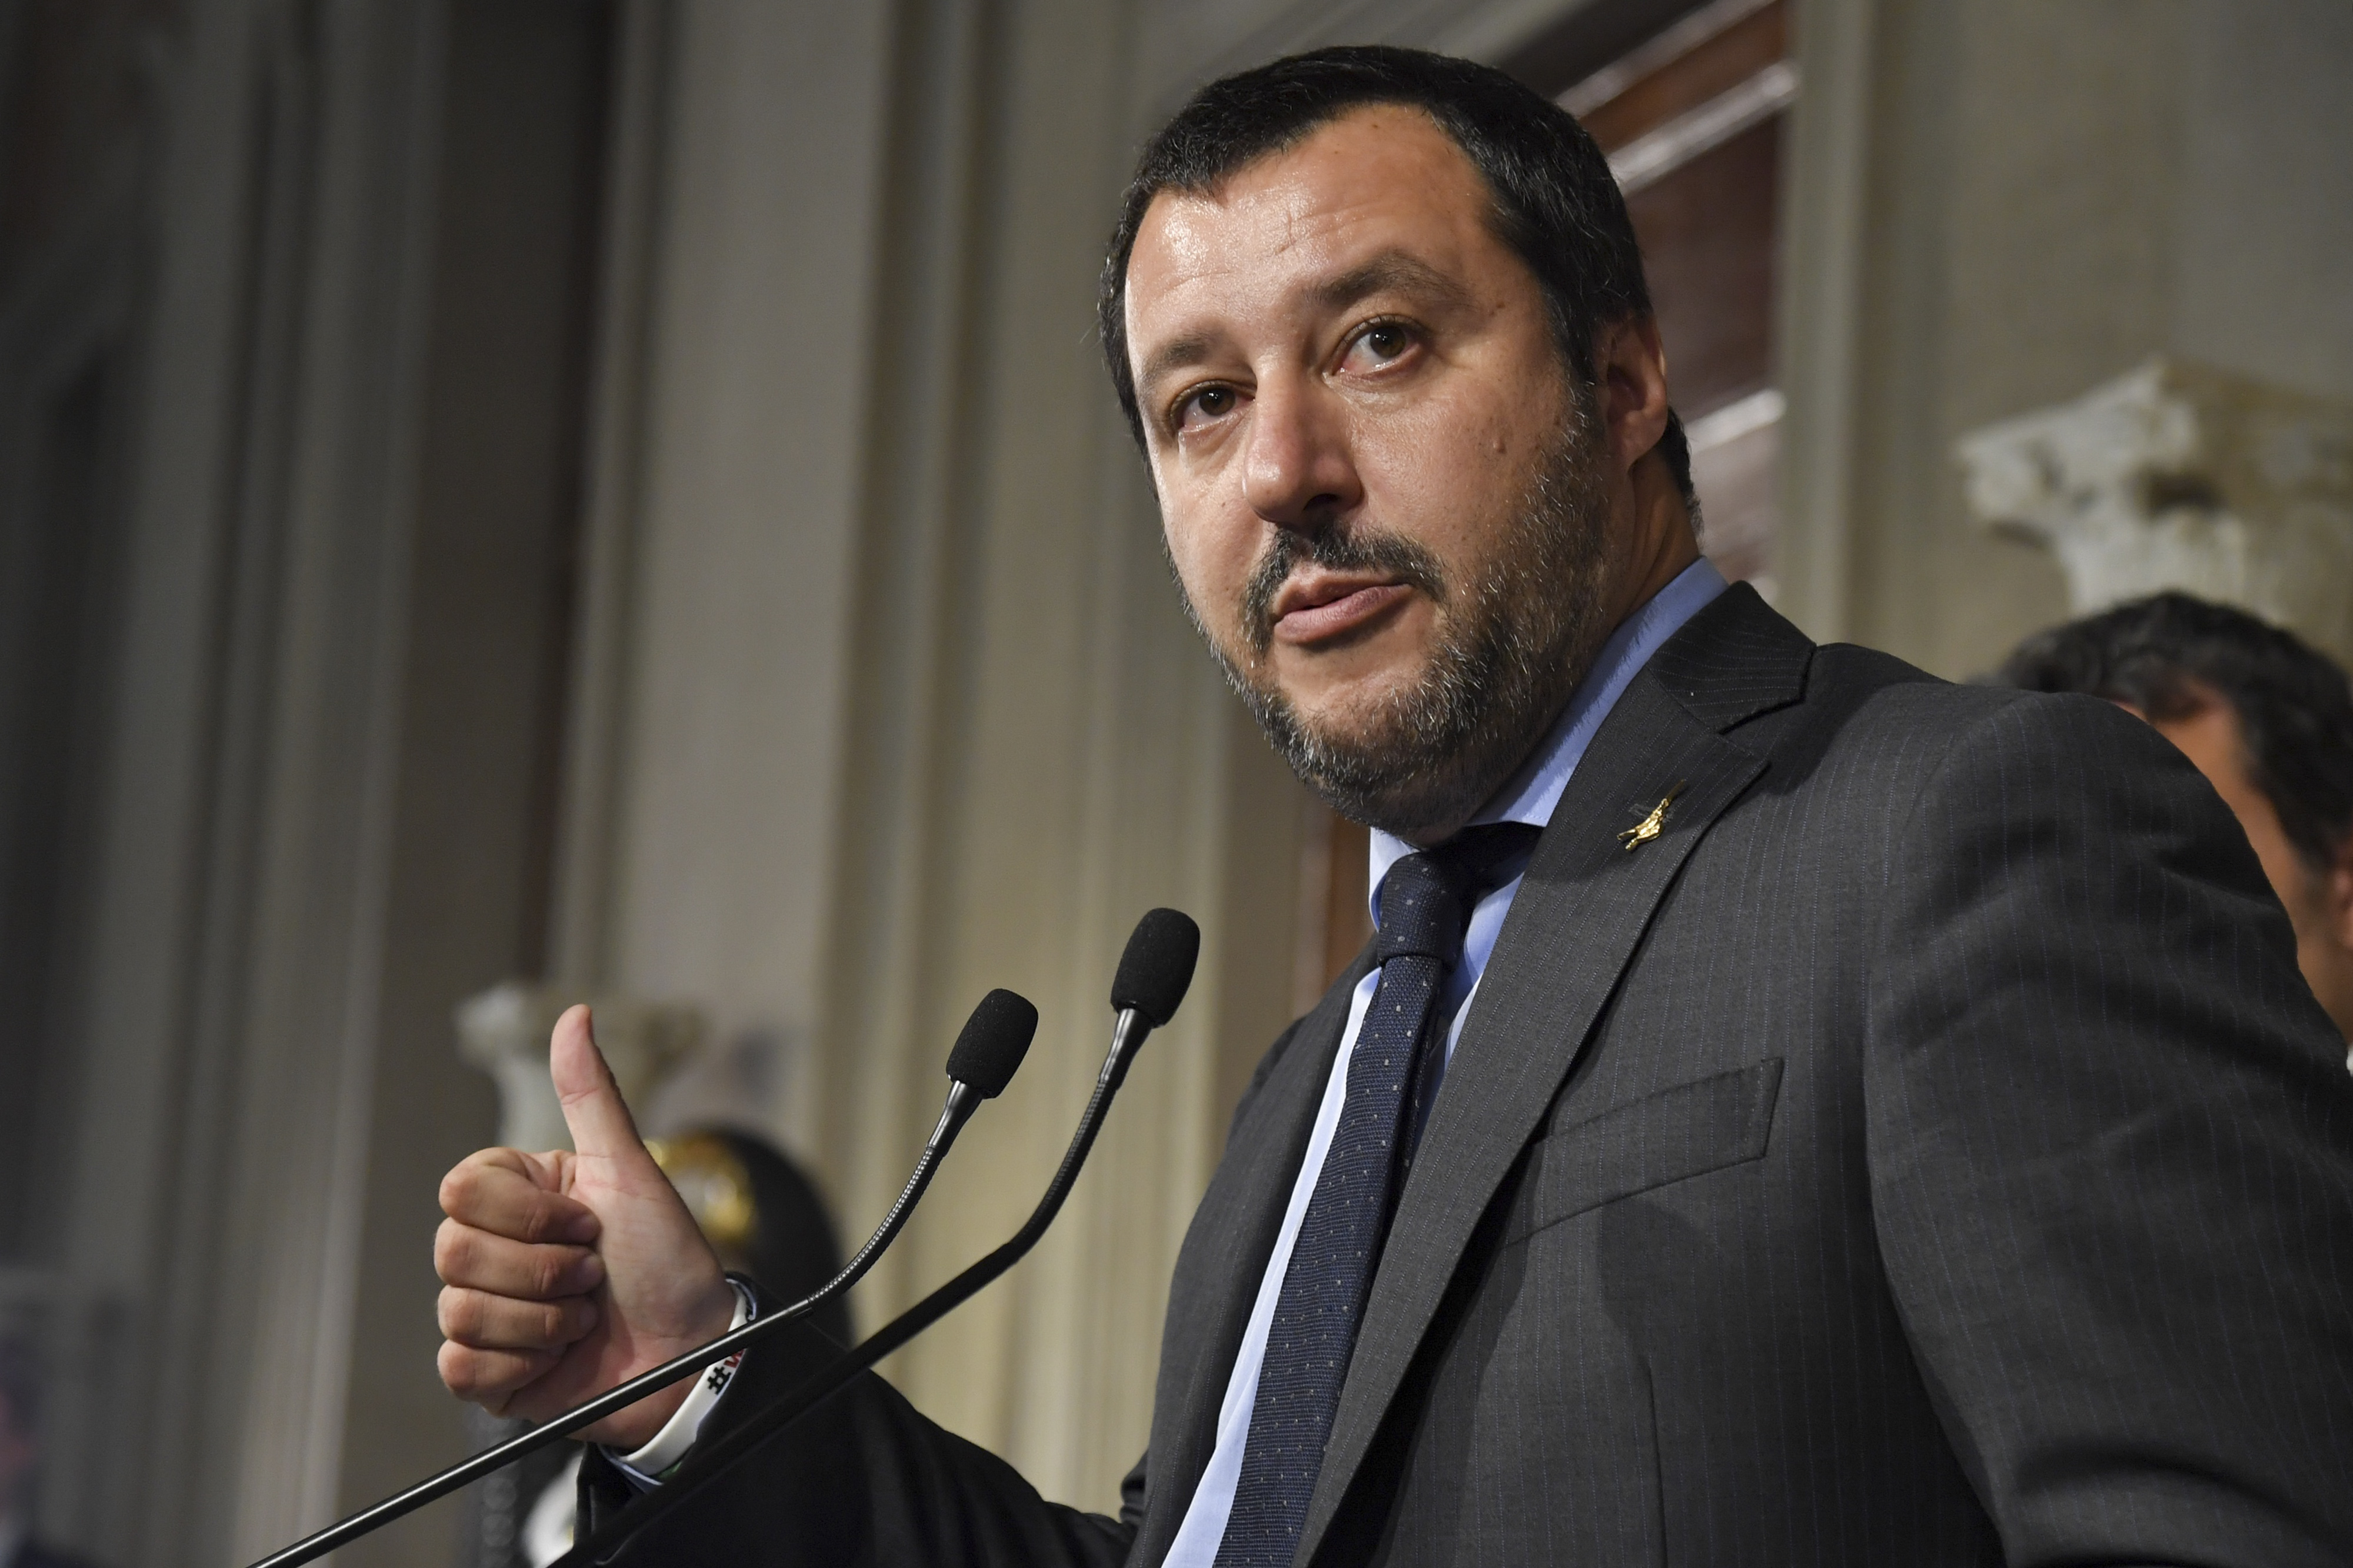 """Matteo Salvini, leader of the far-right party """"Lega"""" (League) speaks to the press after a meeting with Italian President Sergio Mattarella as part of consultations of political parties to form a government, on May 14, 2018 at the Quirinale palace in ..."""